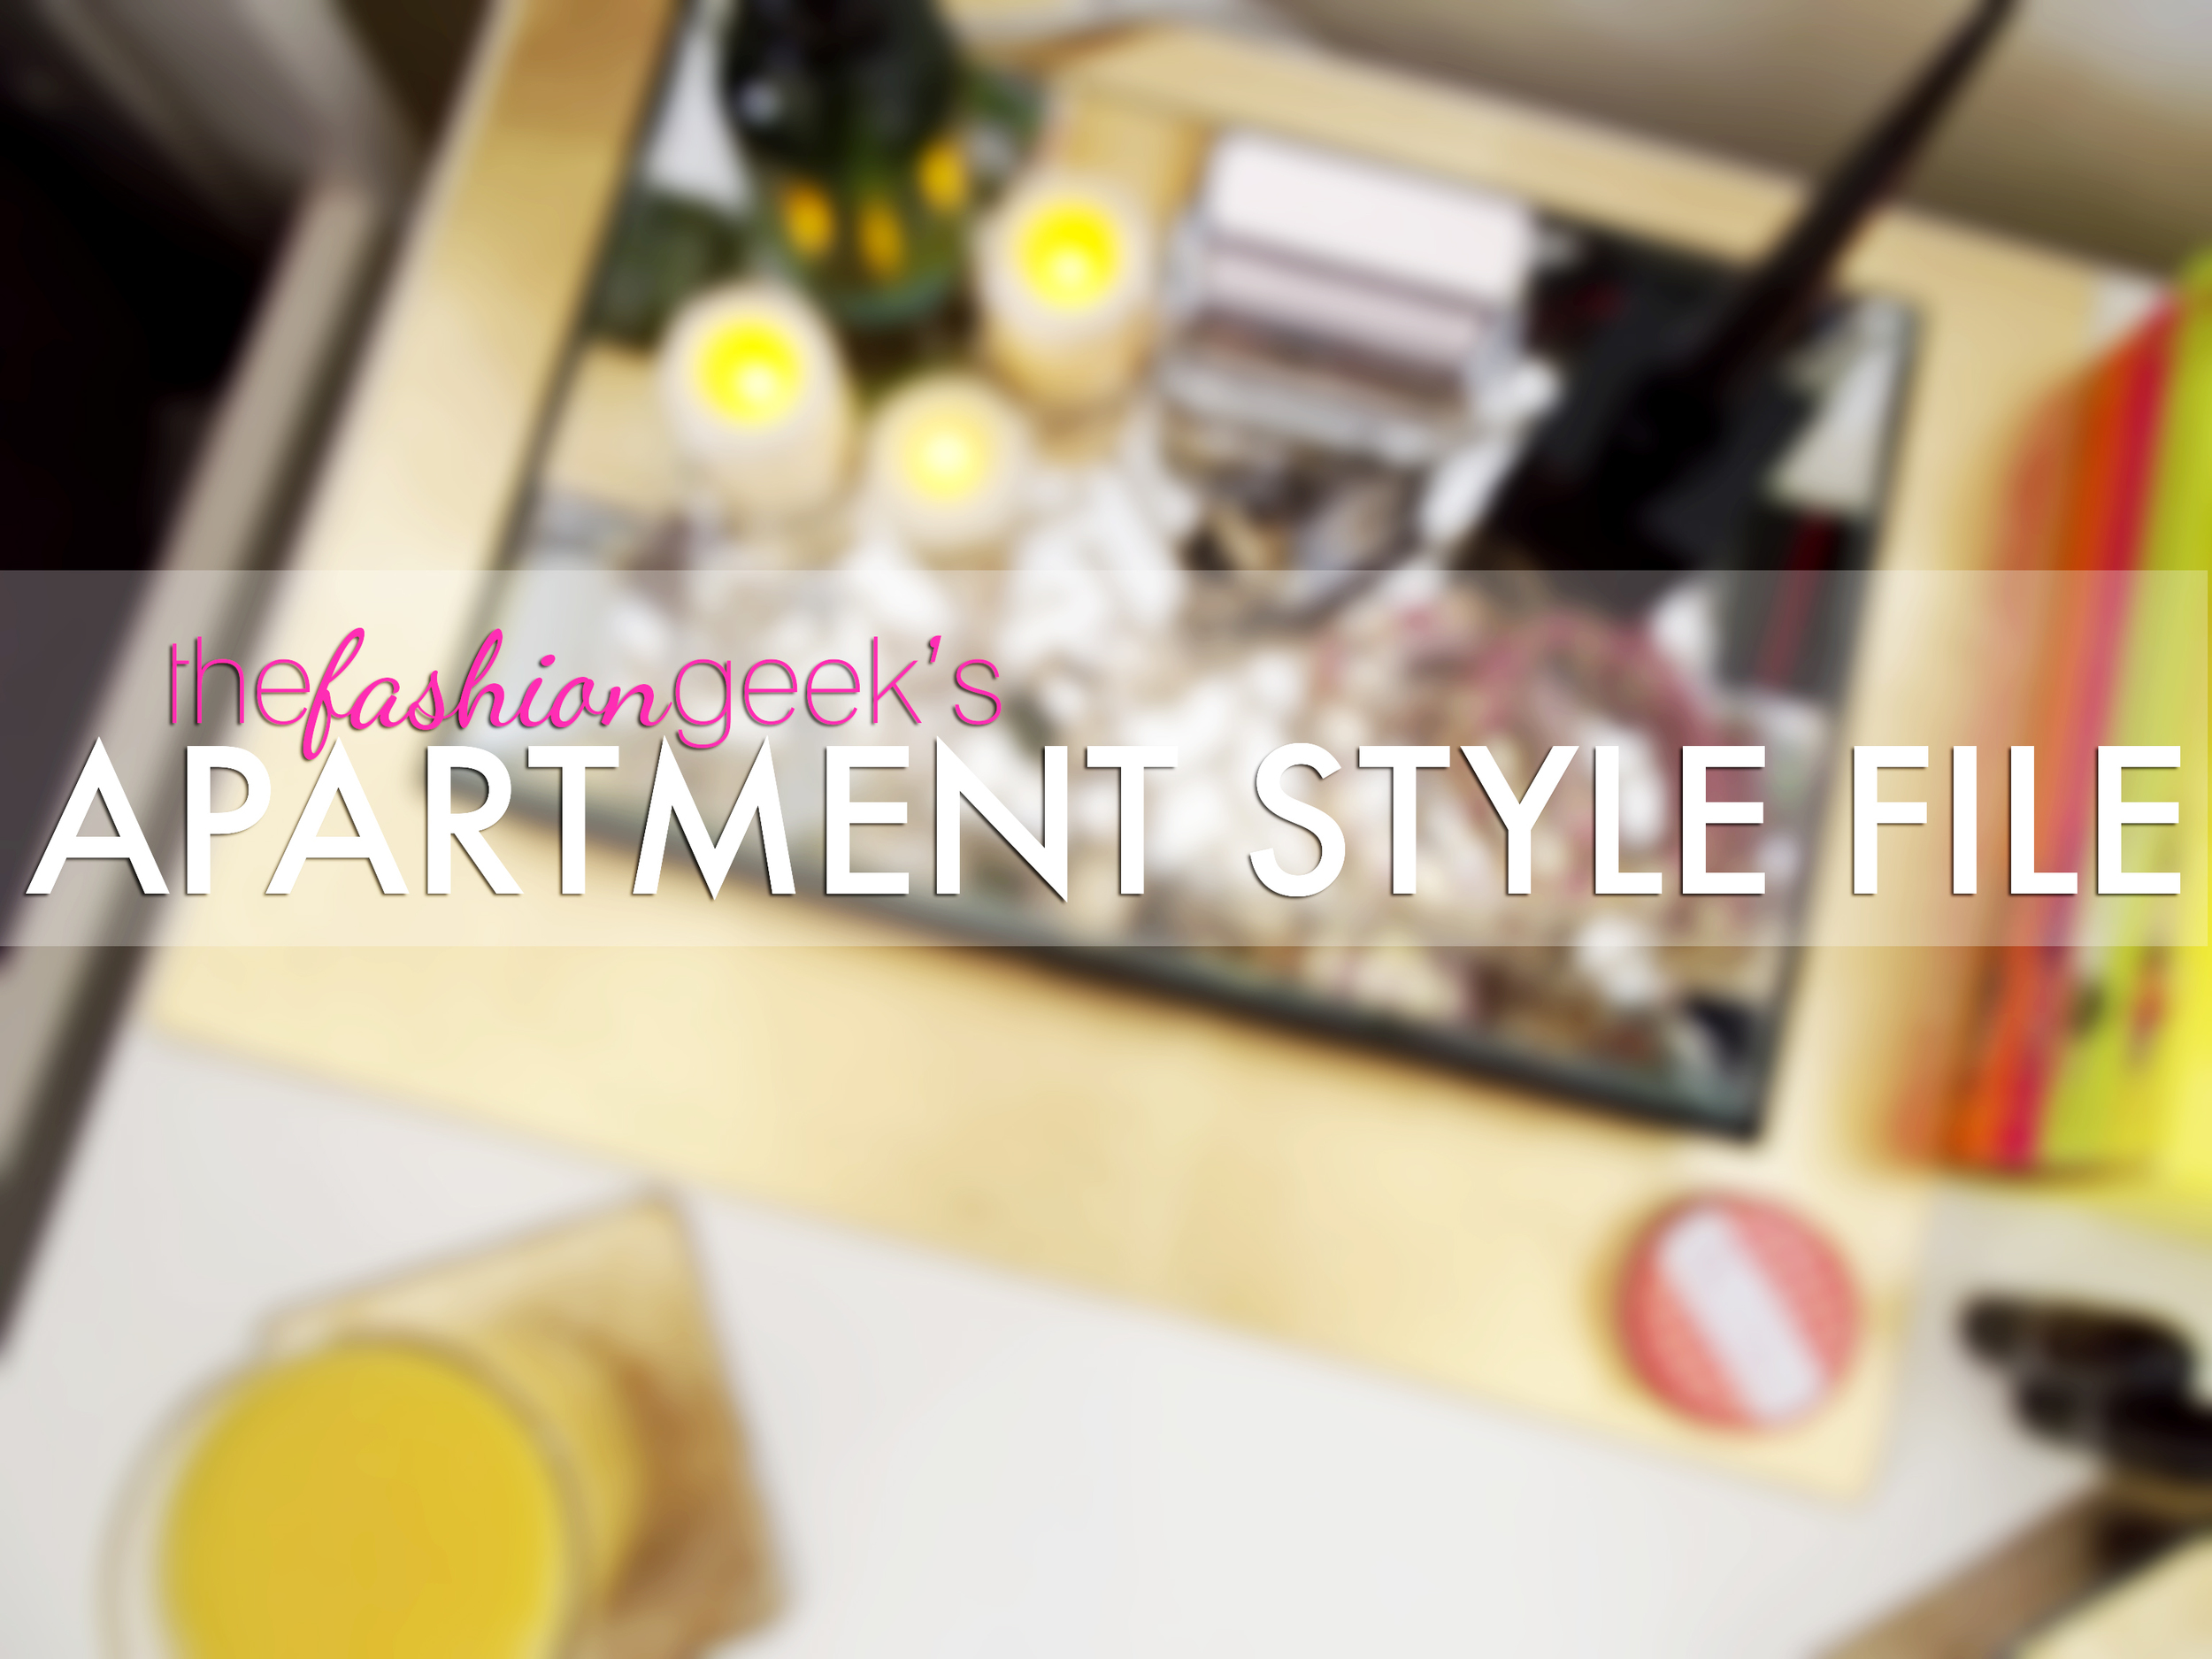 apartment-style-file-1.jpg